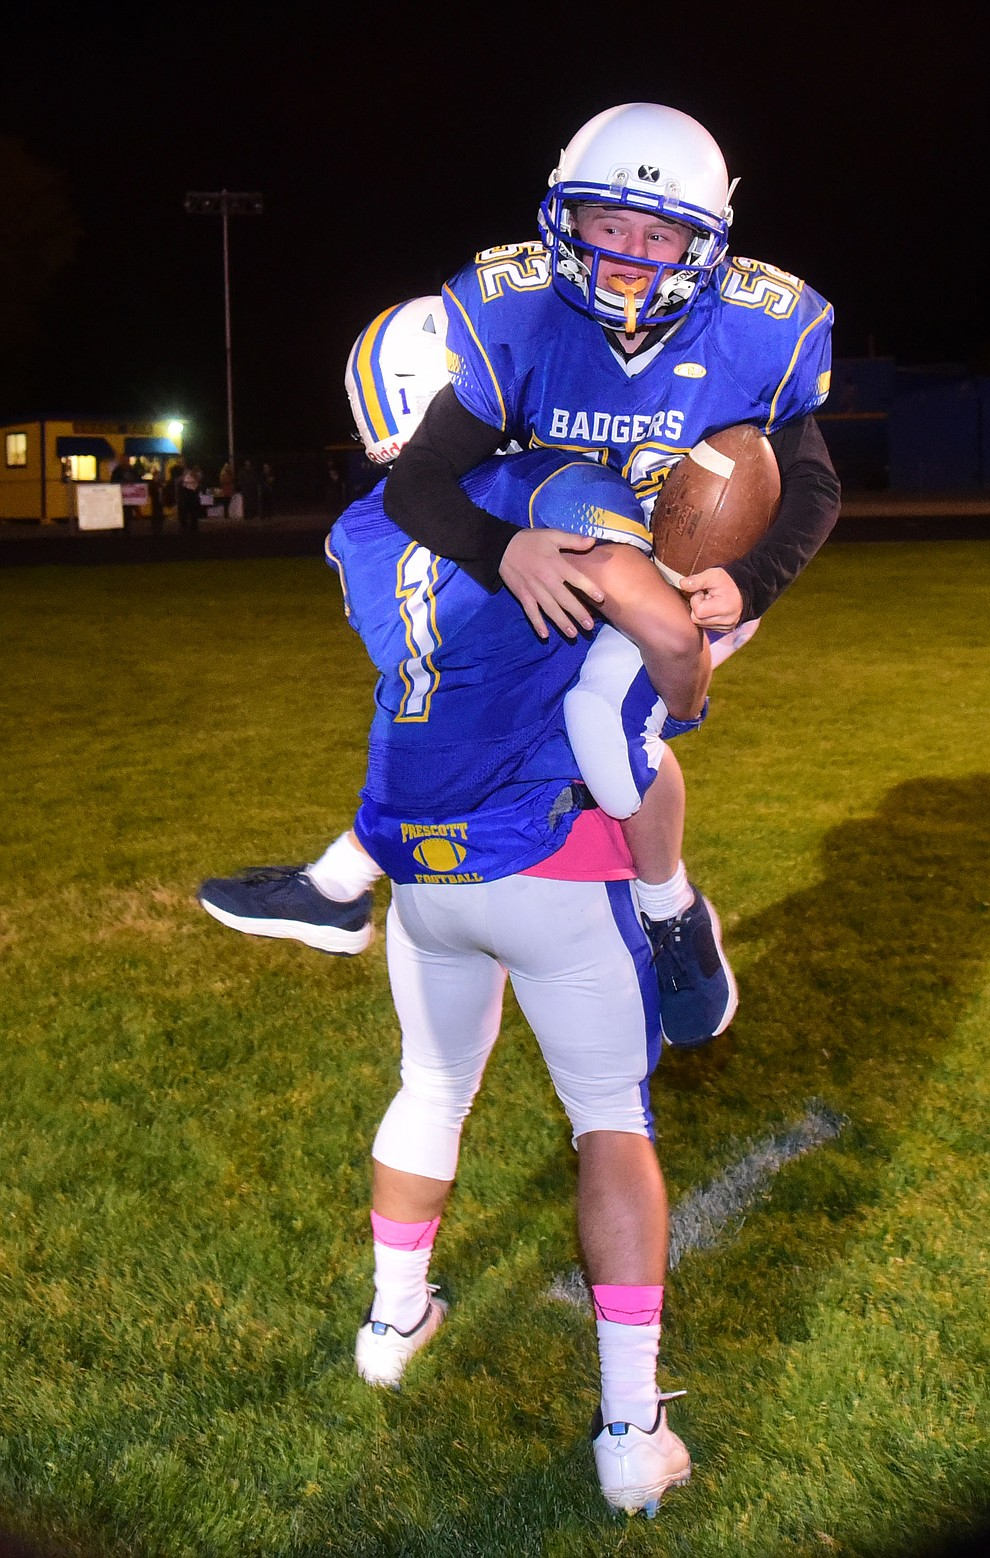 Ryan Tardibuono celebrates with Nathan Briseno (1) after scoring a touchdown before the Prescott Badgers play cross mountain rival Mingus for the region title Friday, Oct. 26, 2018 in Prescott. (Les Stukenberg/Courier).